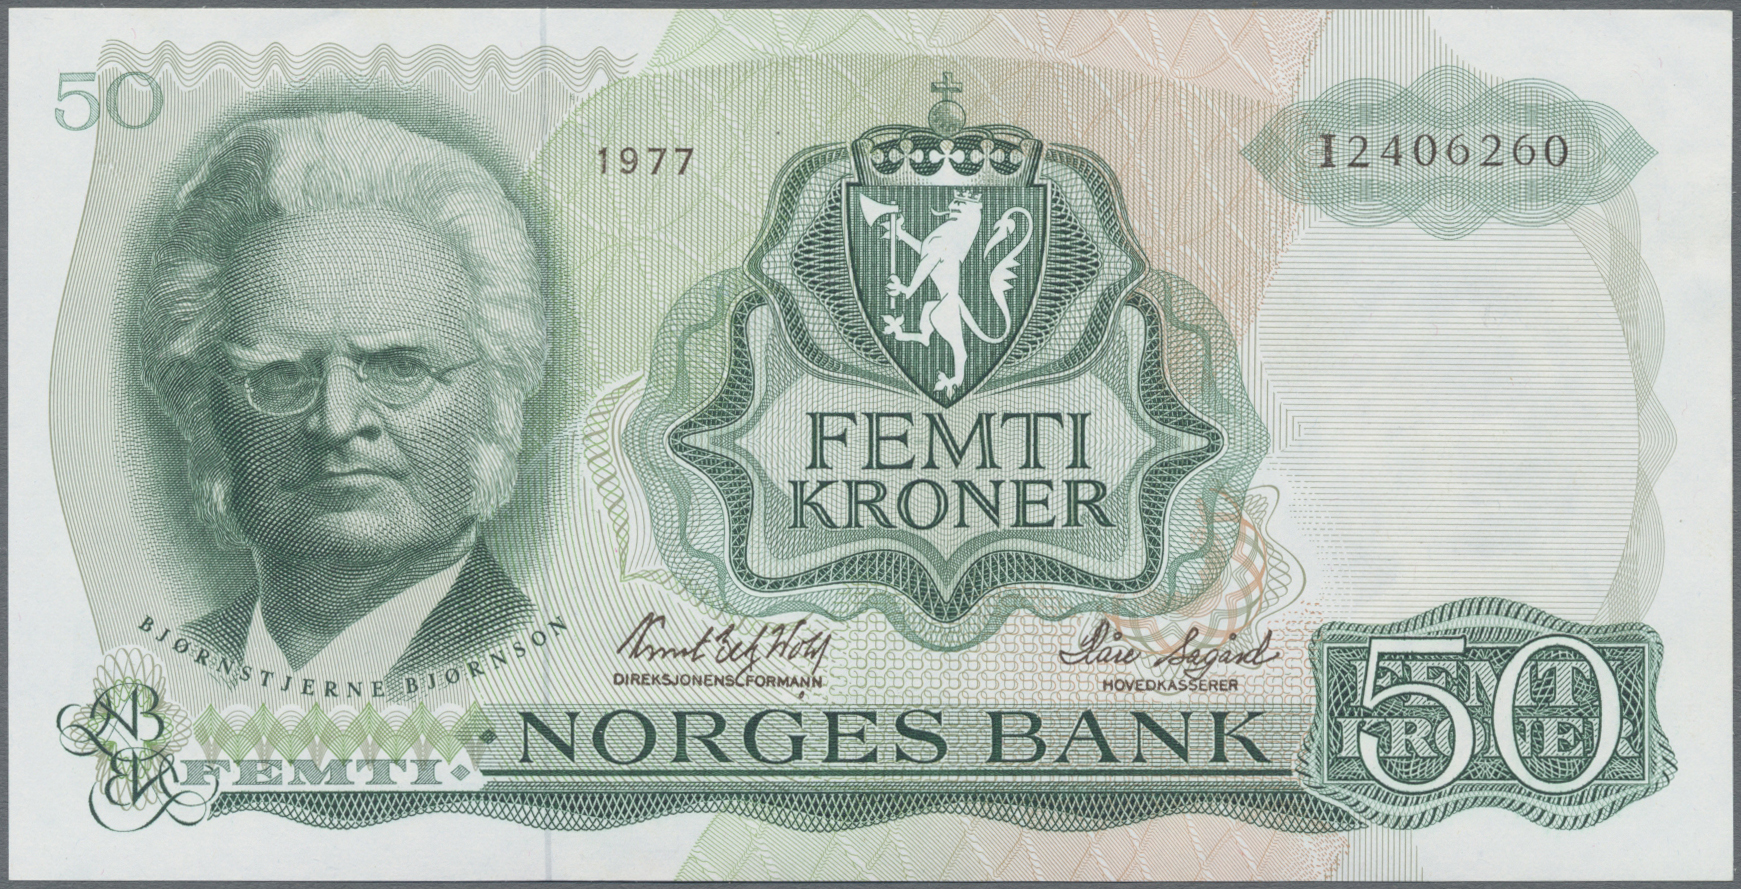 Lot 00577 - Norway / Norwegen | Banknoten  -  Auktionshaus Christoph Gärtner GmbH & Co. KG Sale #48 The Banknotes